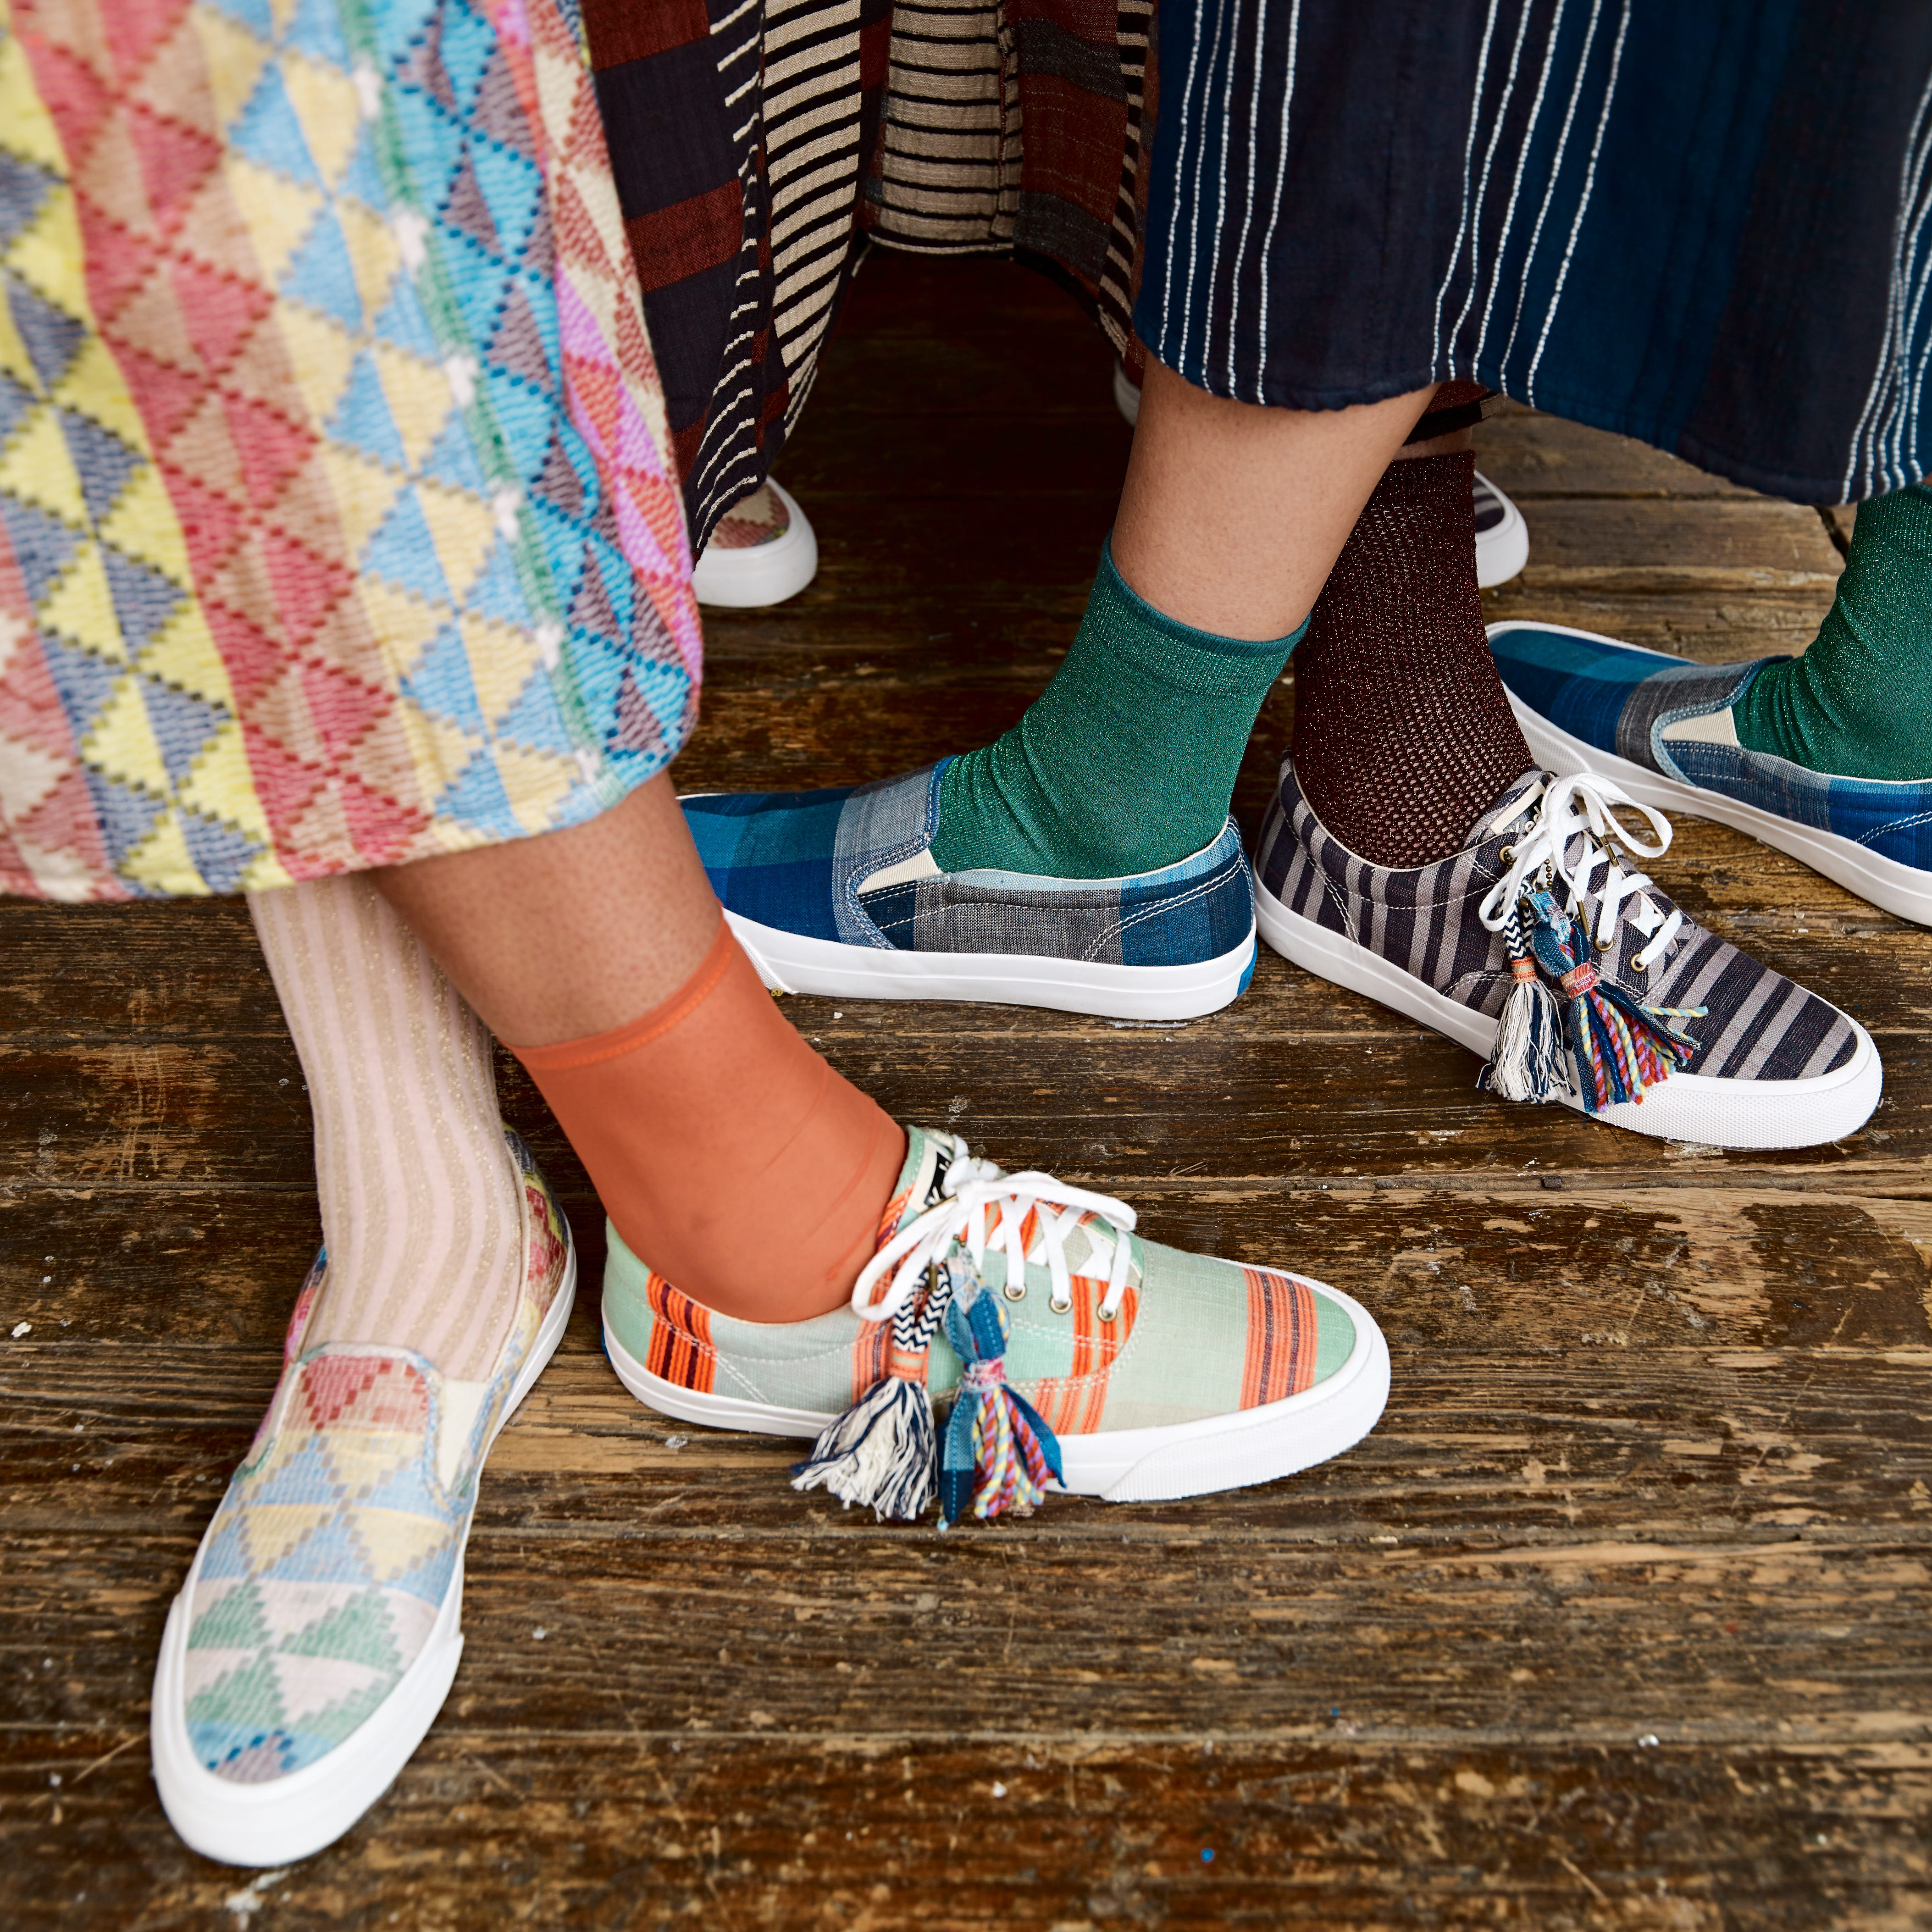 This Recycled Textiles Keds Collaboration Is Super Limited And Selling Out Fast